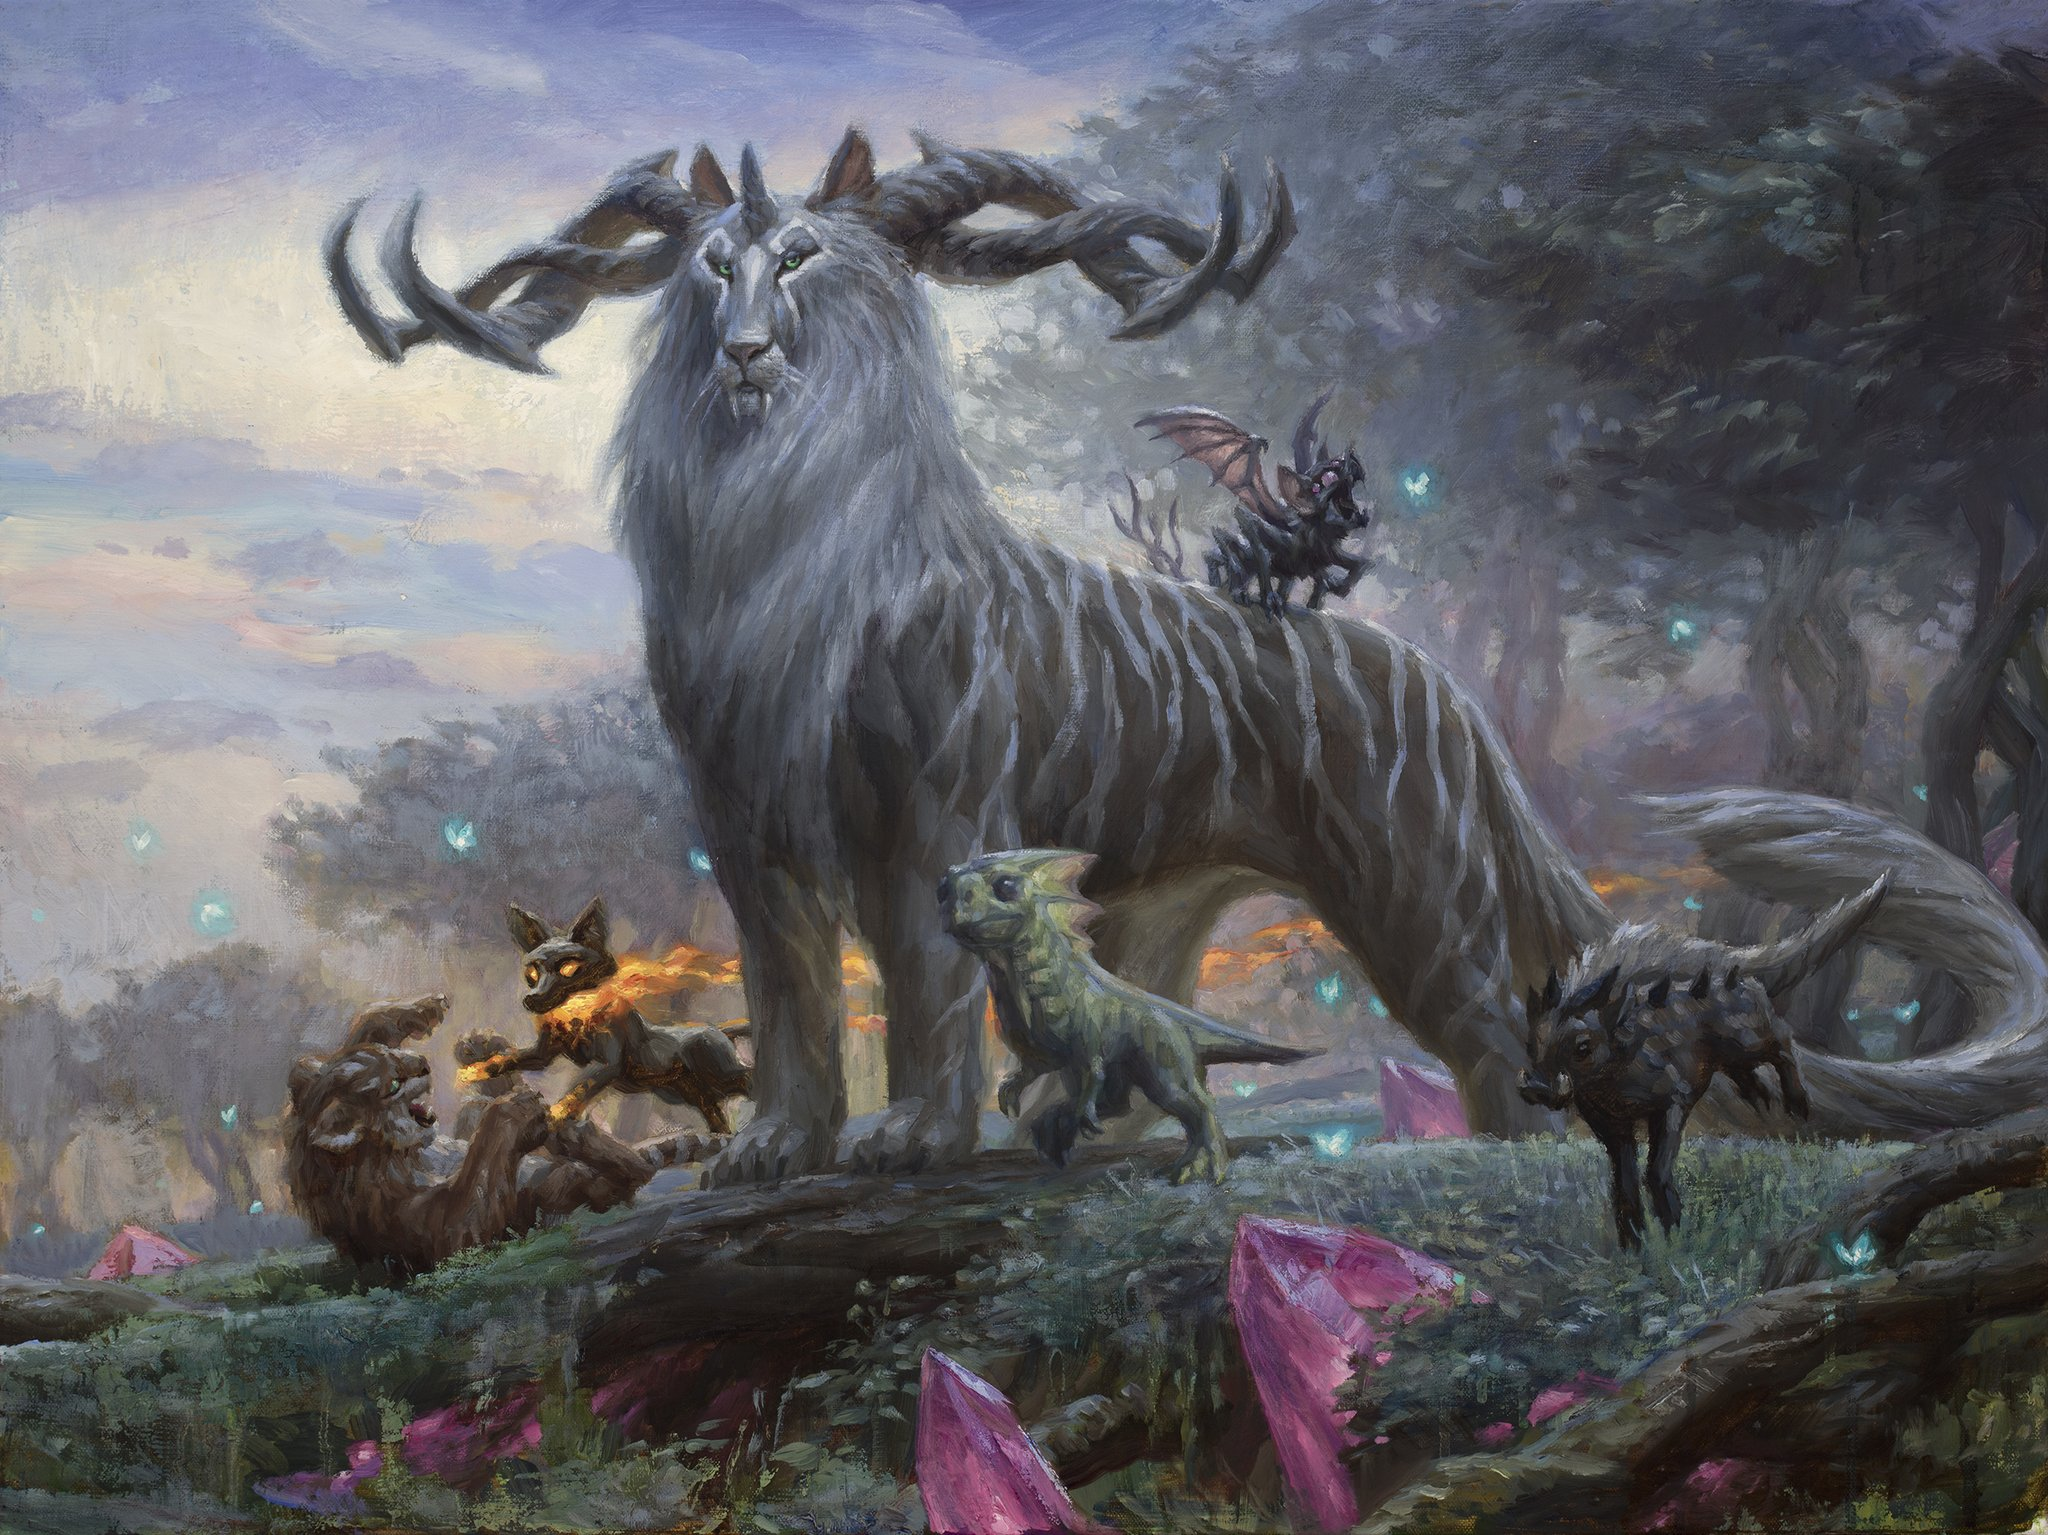 How To Build Around Kaheera, Lord Of The Misfit Creature Type